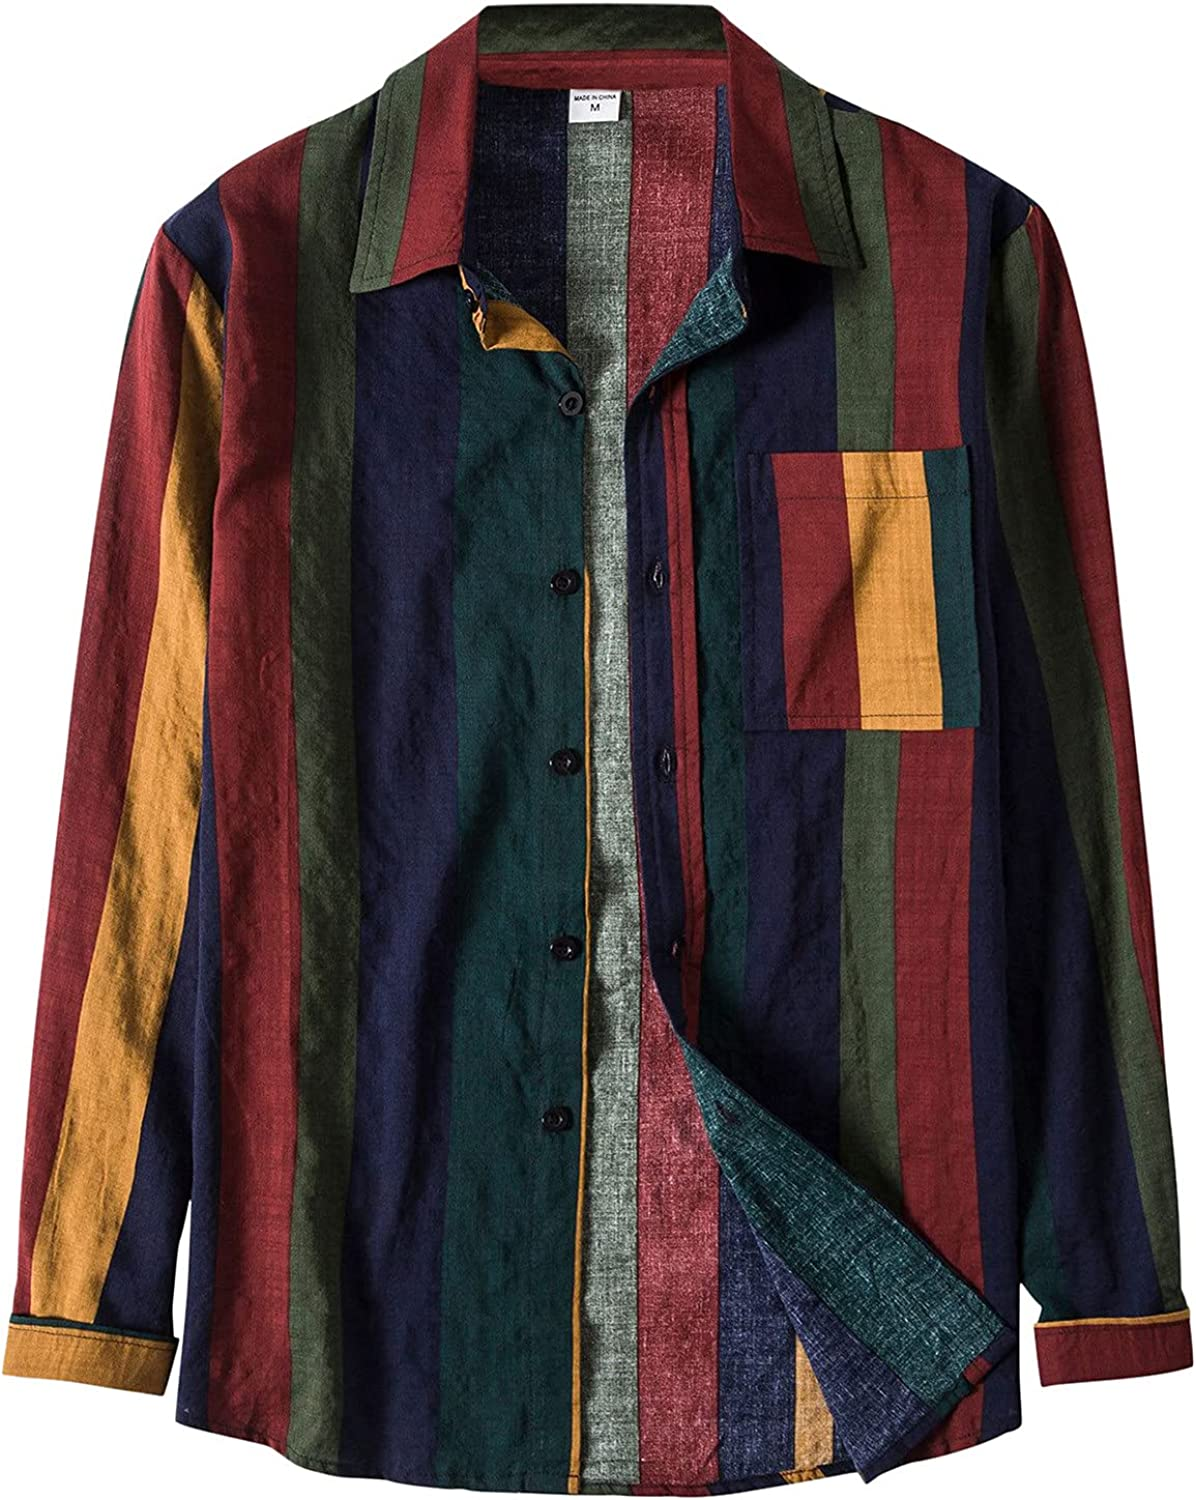 Tops for Men Solid Boston Mall Linen Colorful Butt Pocket Long Discount is also underway Sleeve Stripe